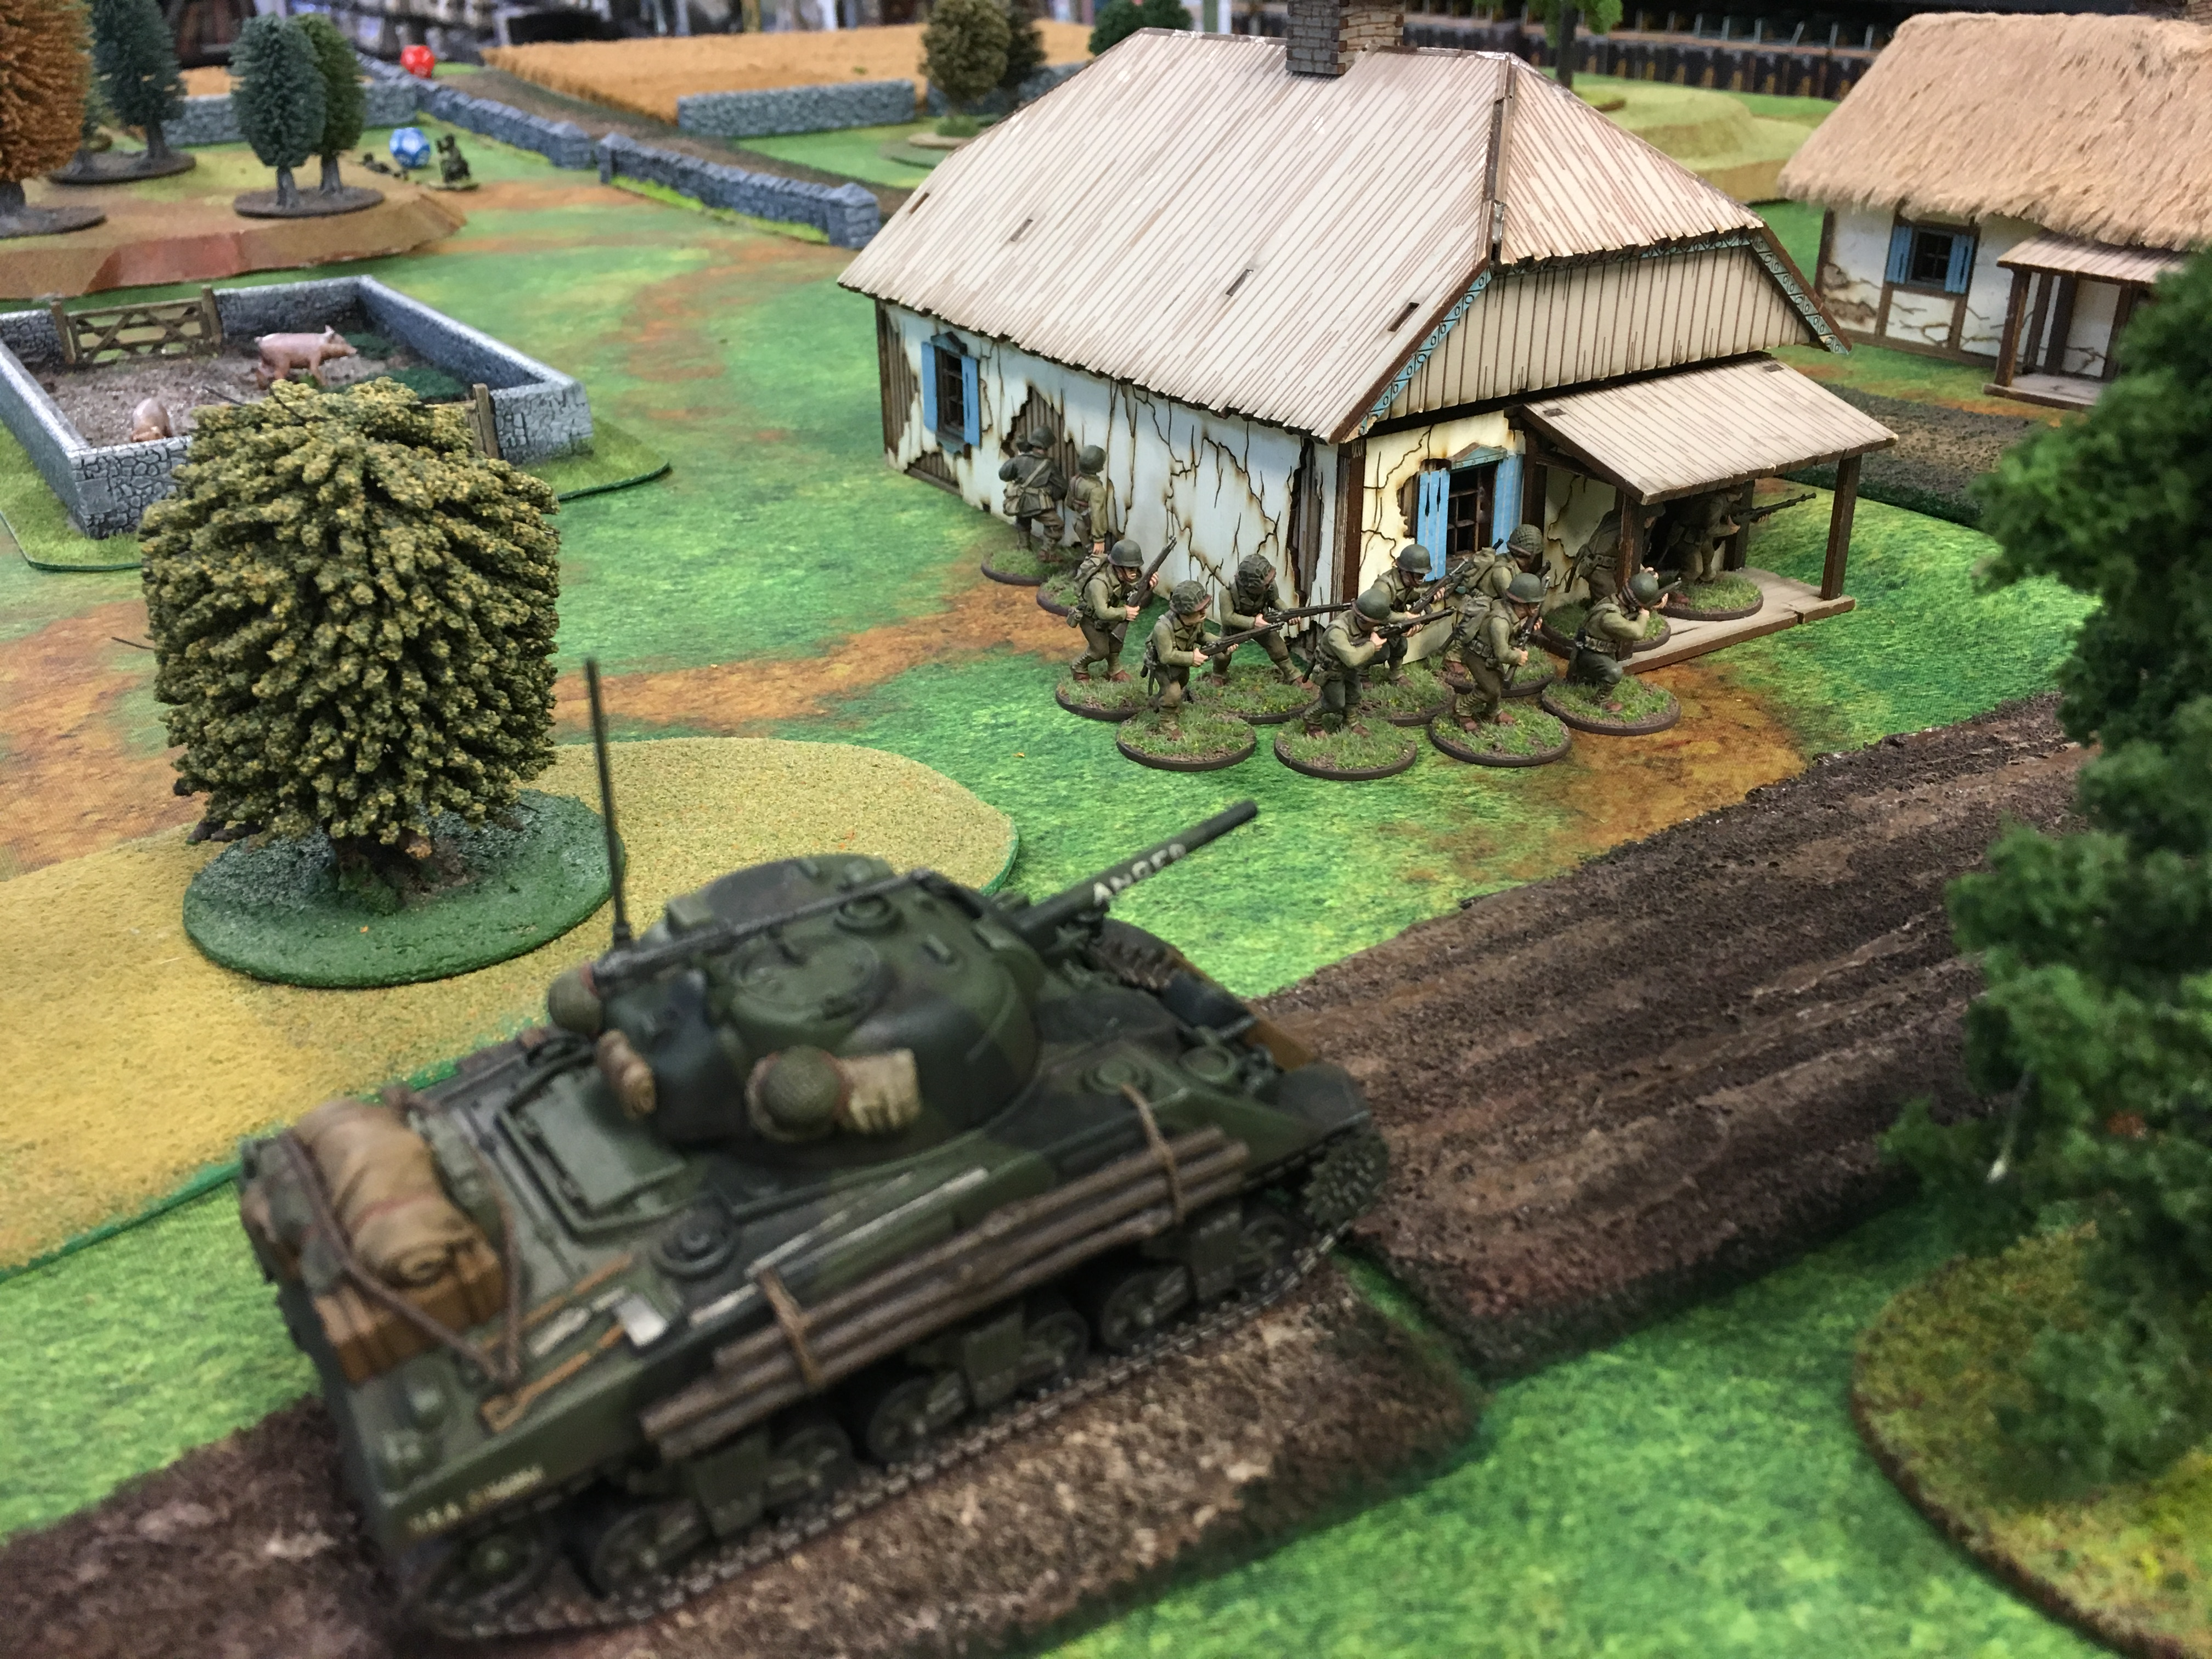 The Furious versus 352nd Pionier Battalion in a fierce infantry engagement